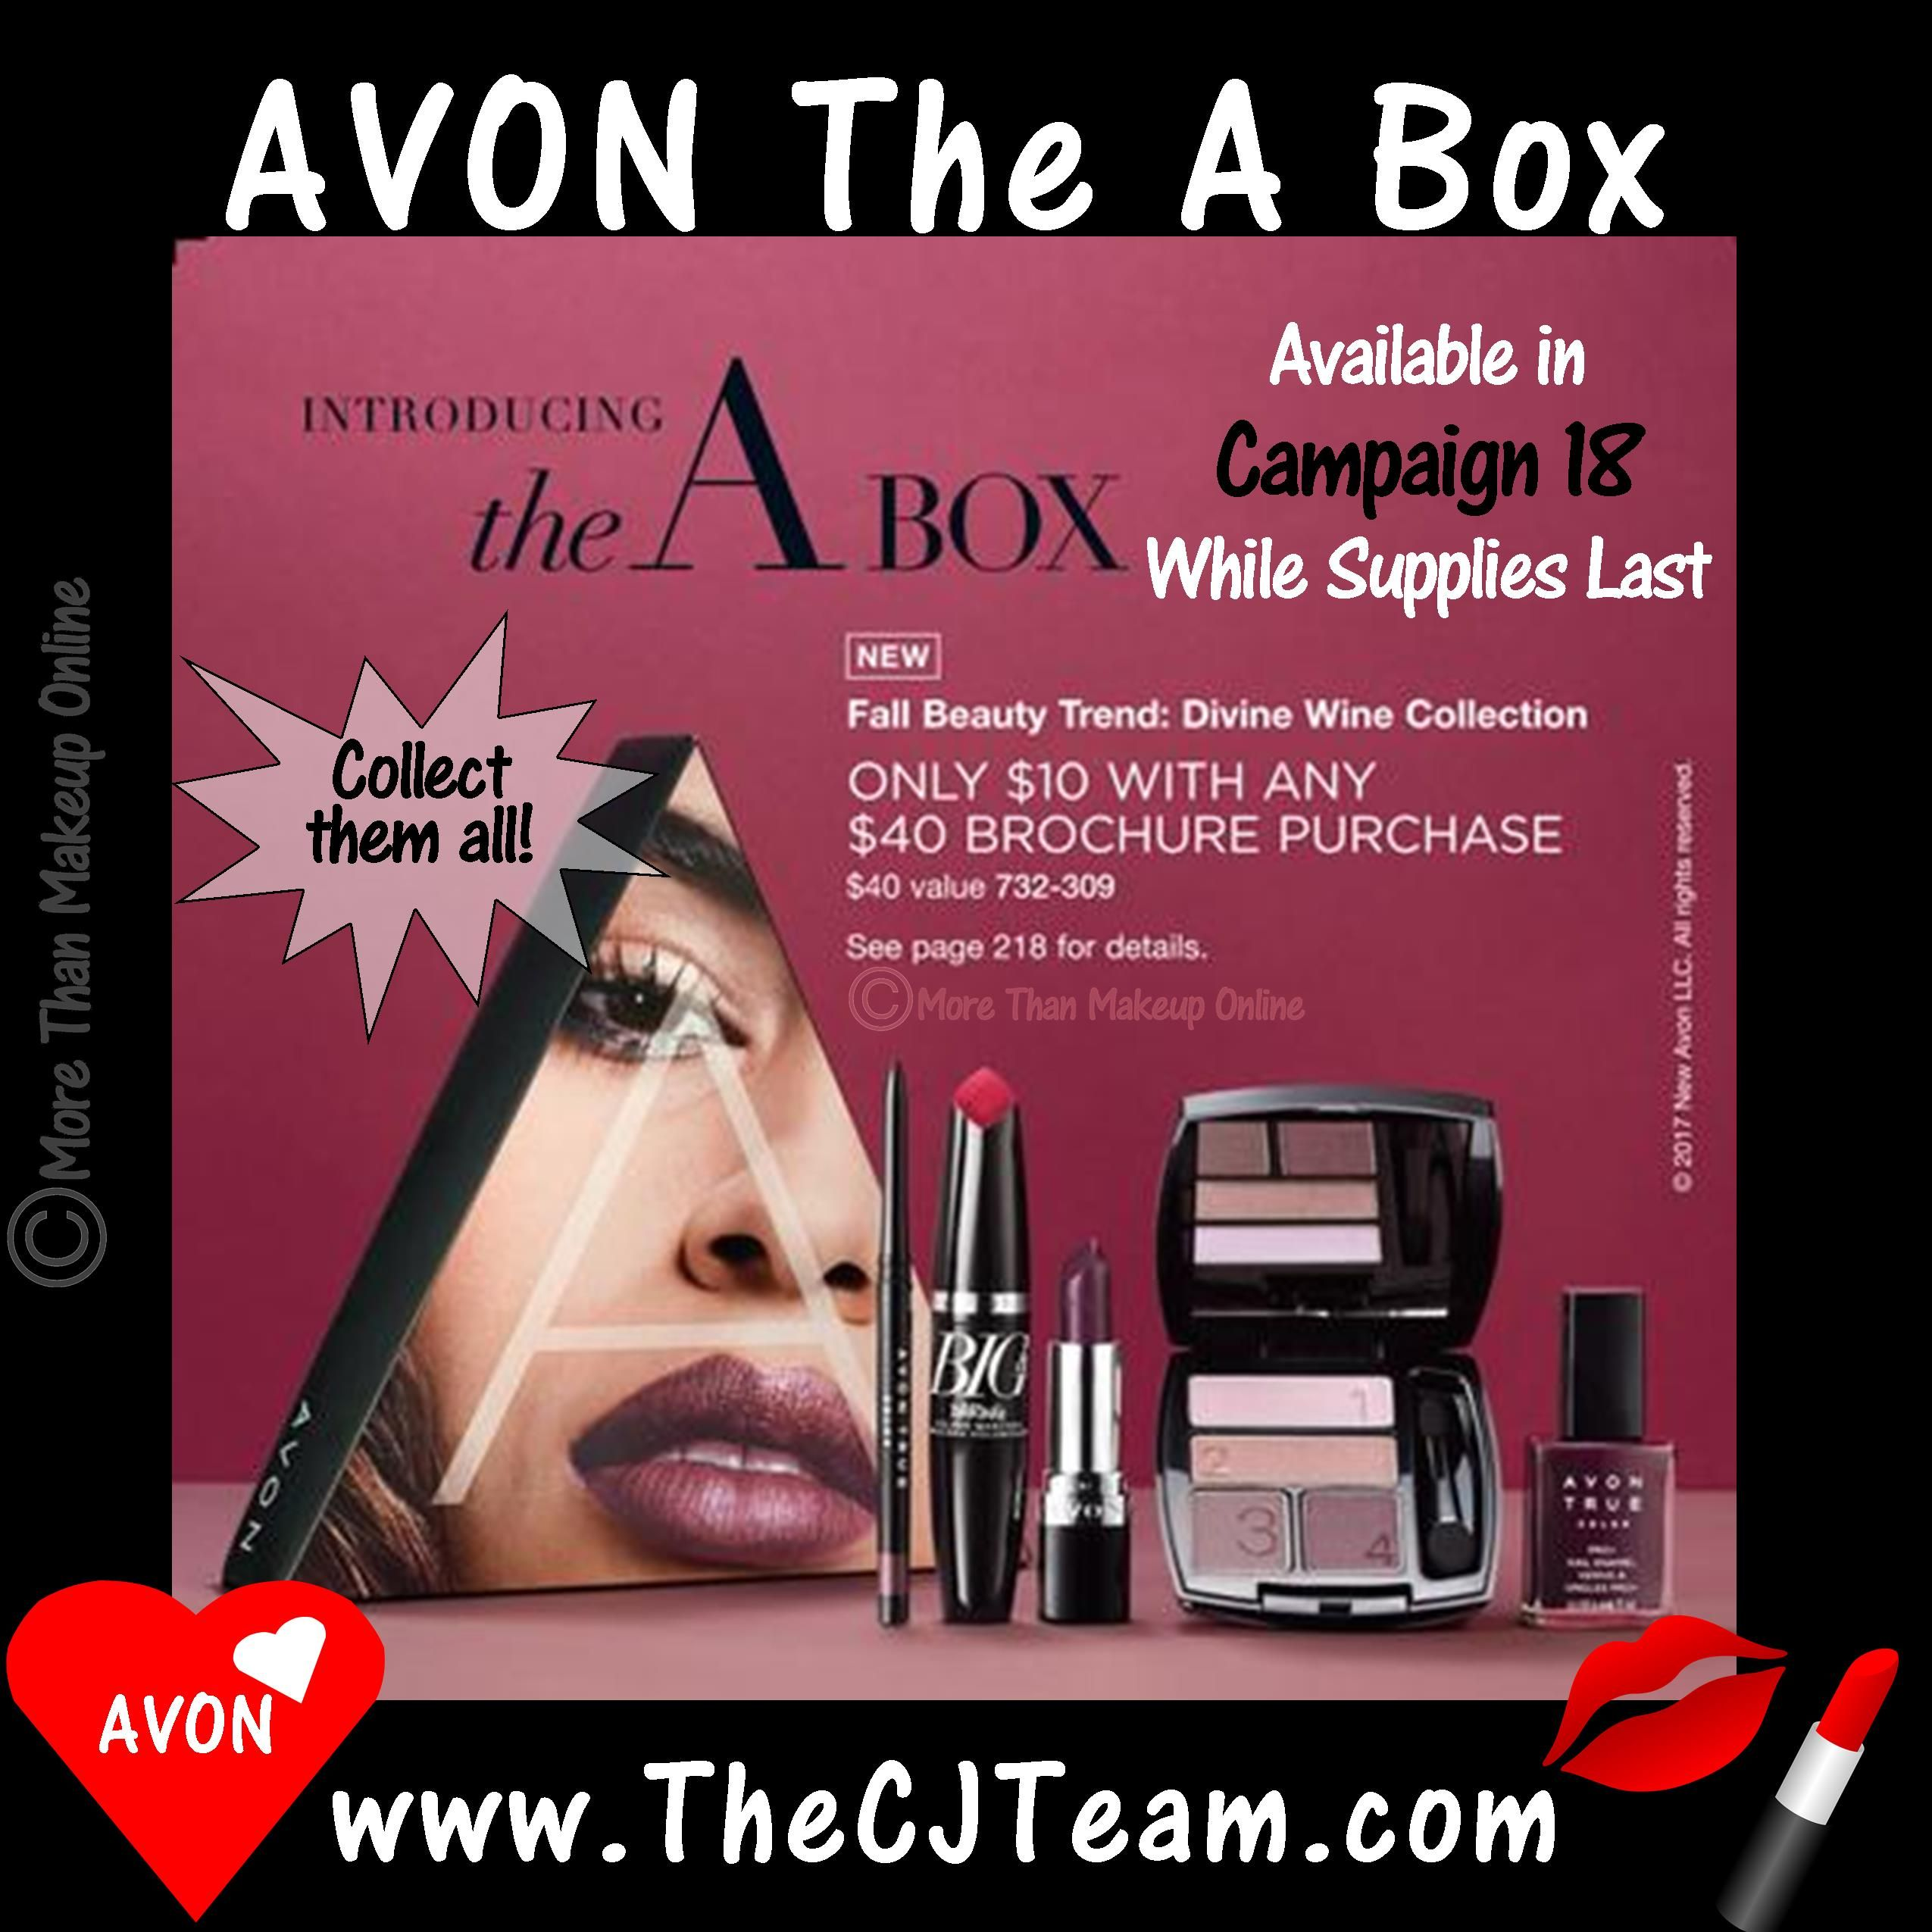 The Avon A Box Divine Wine Collection Each Avon Brochure Be Sure To Check Out A Fabulous New A Box Perfect Avon Skin So Soft Buy Avon Online Avon Online